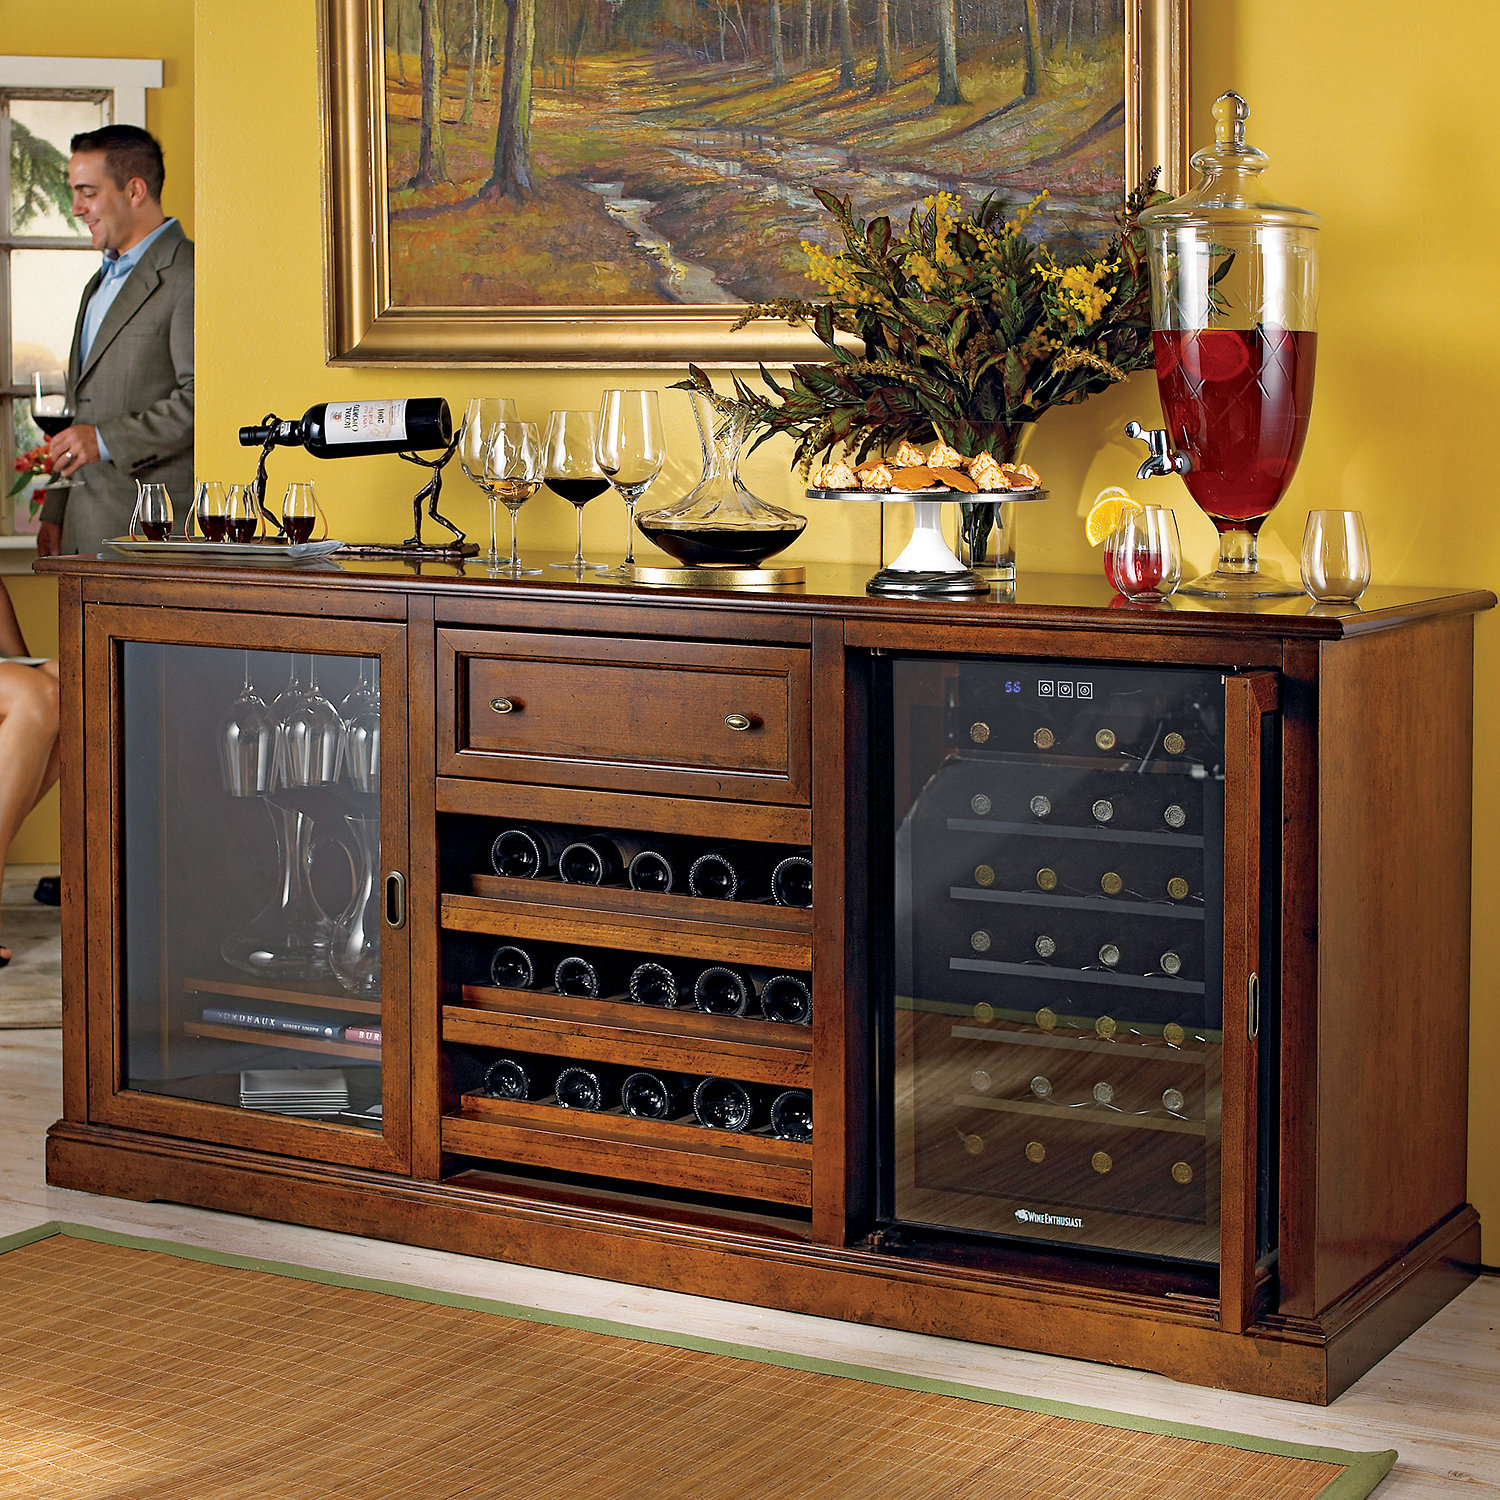 Siena Wine Credenza (Walnut) with Wine Refrigerator - Wine Enthusiast